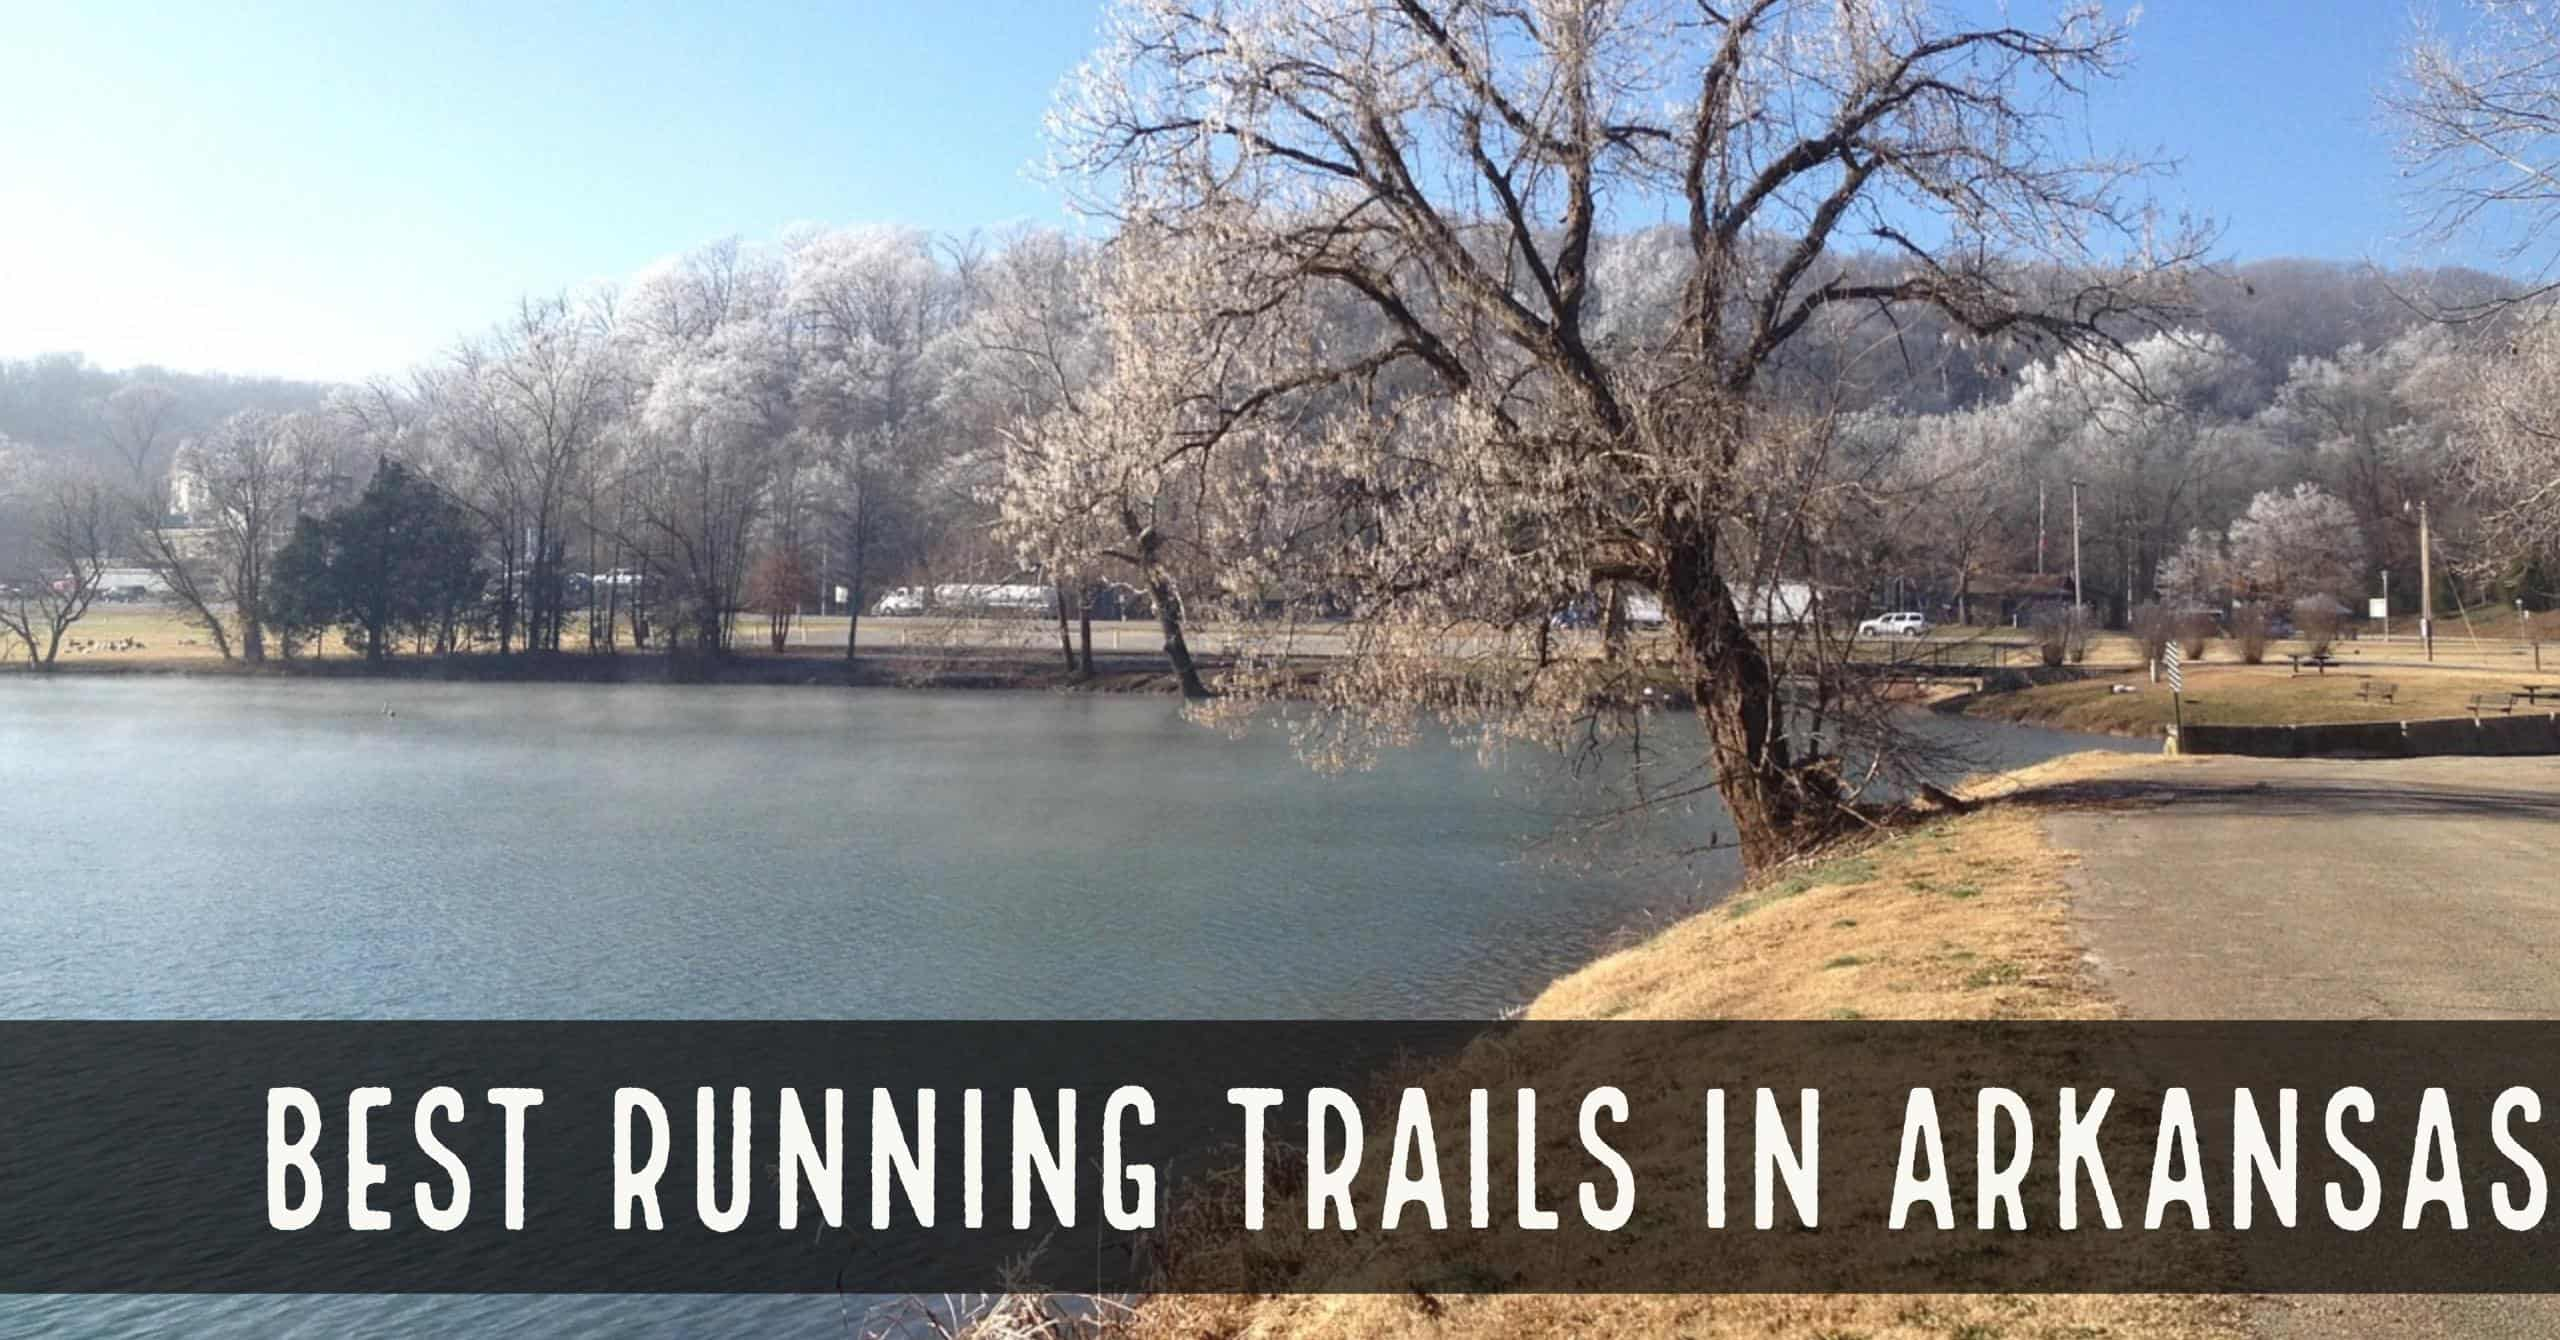 Best Running Trails in Arkansas